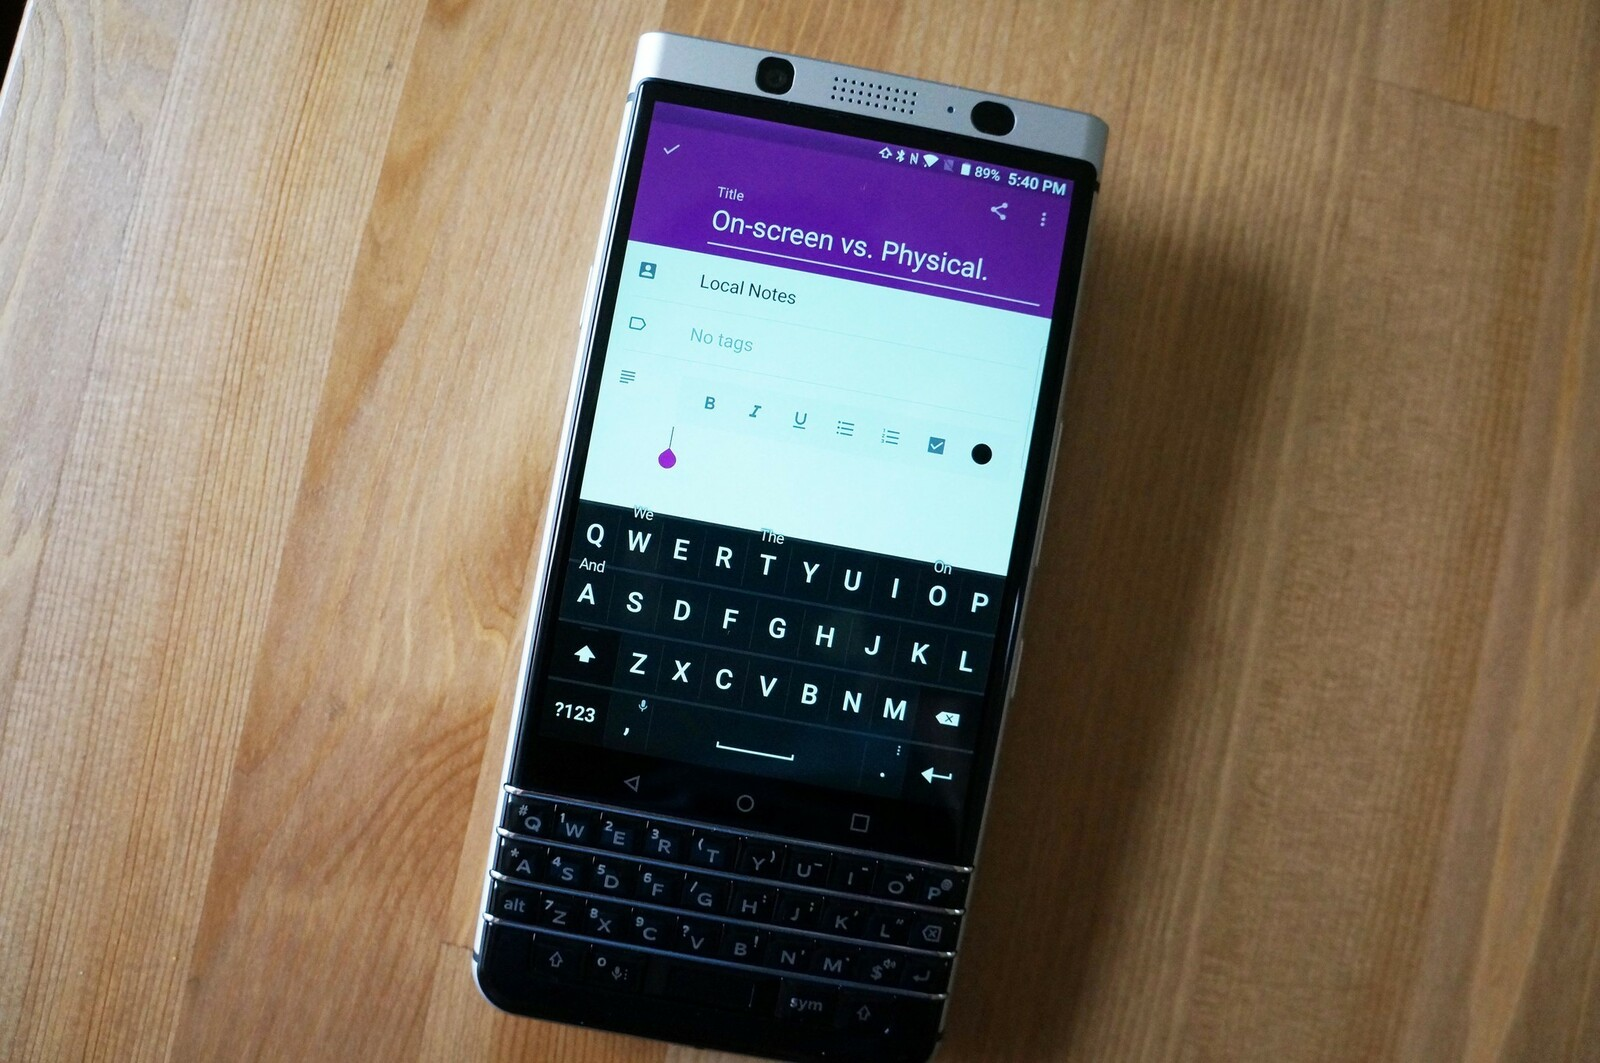 How to access the on-screen keyboard of the BlackBerry KEYone